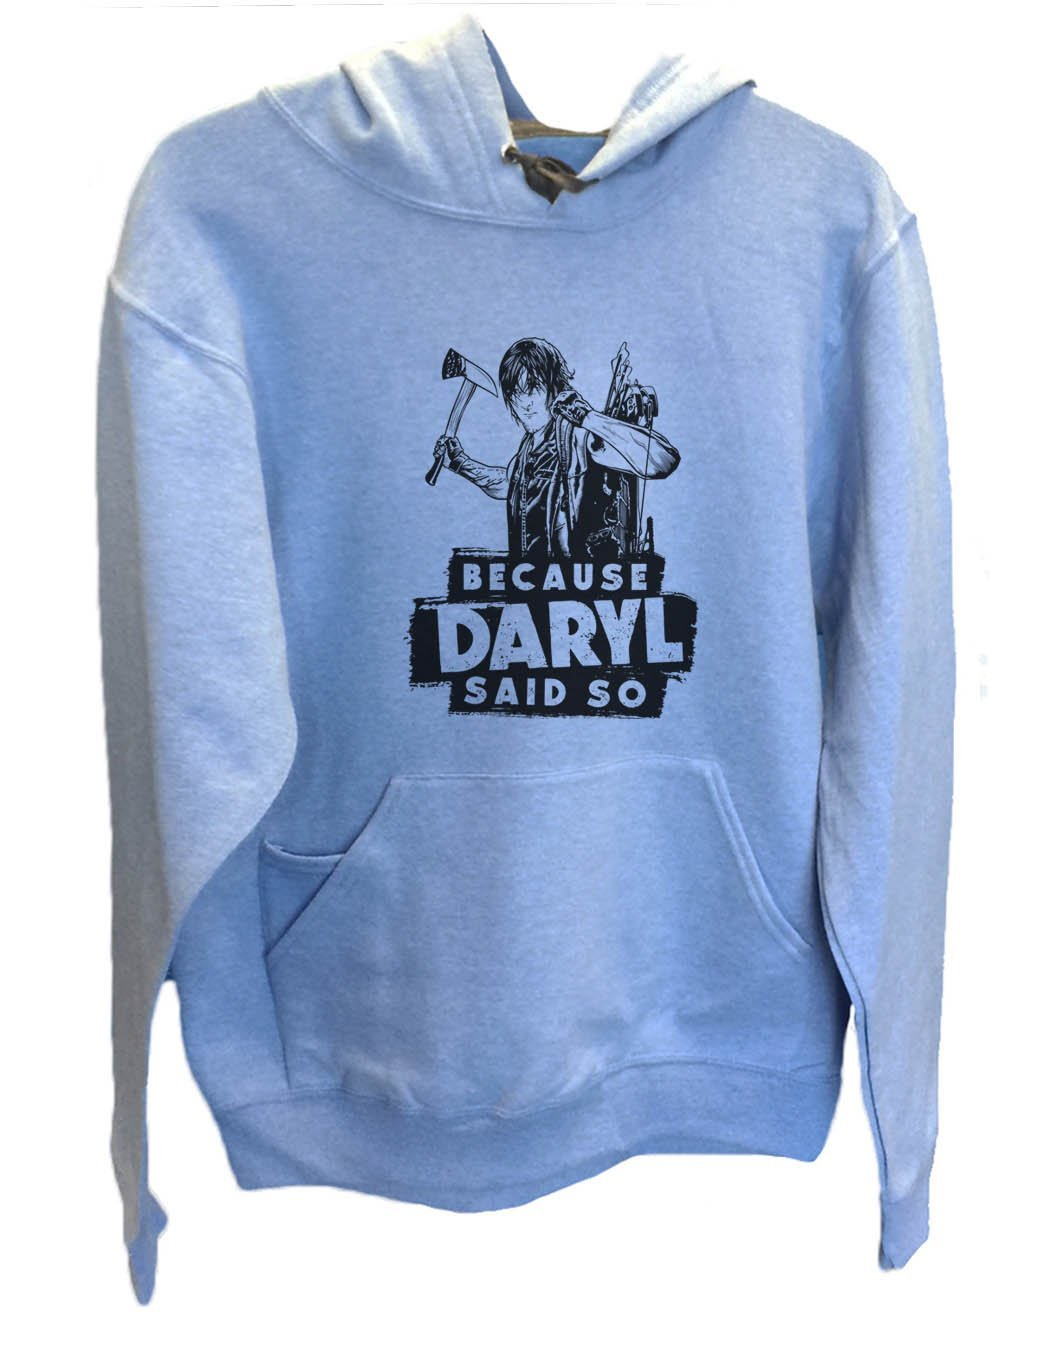 UNISEX HOODIE - Because Daryl Said So - FUNNY MENS AND WOMENS HOODED SWEATSHIRTS - 2310 Funny Shirt Small / North Carolina Blue